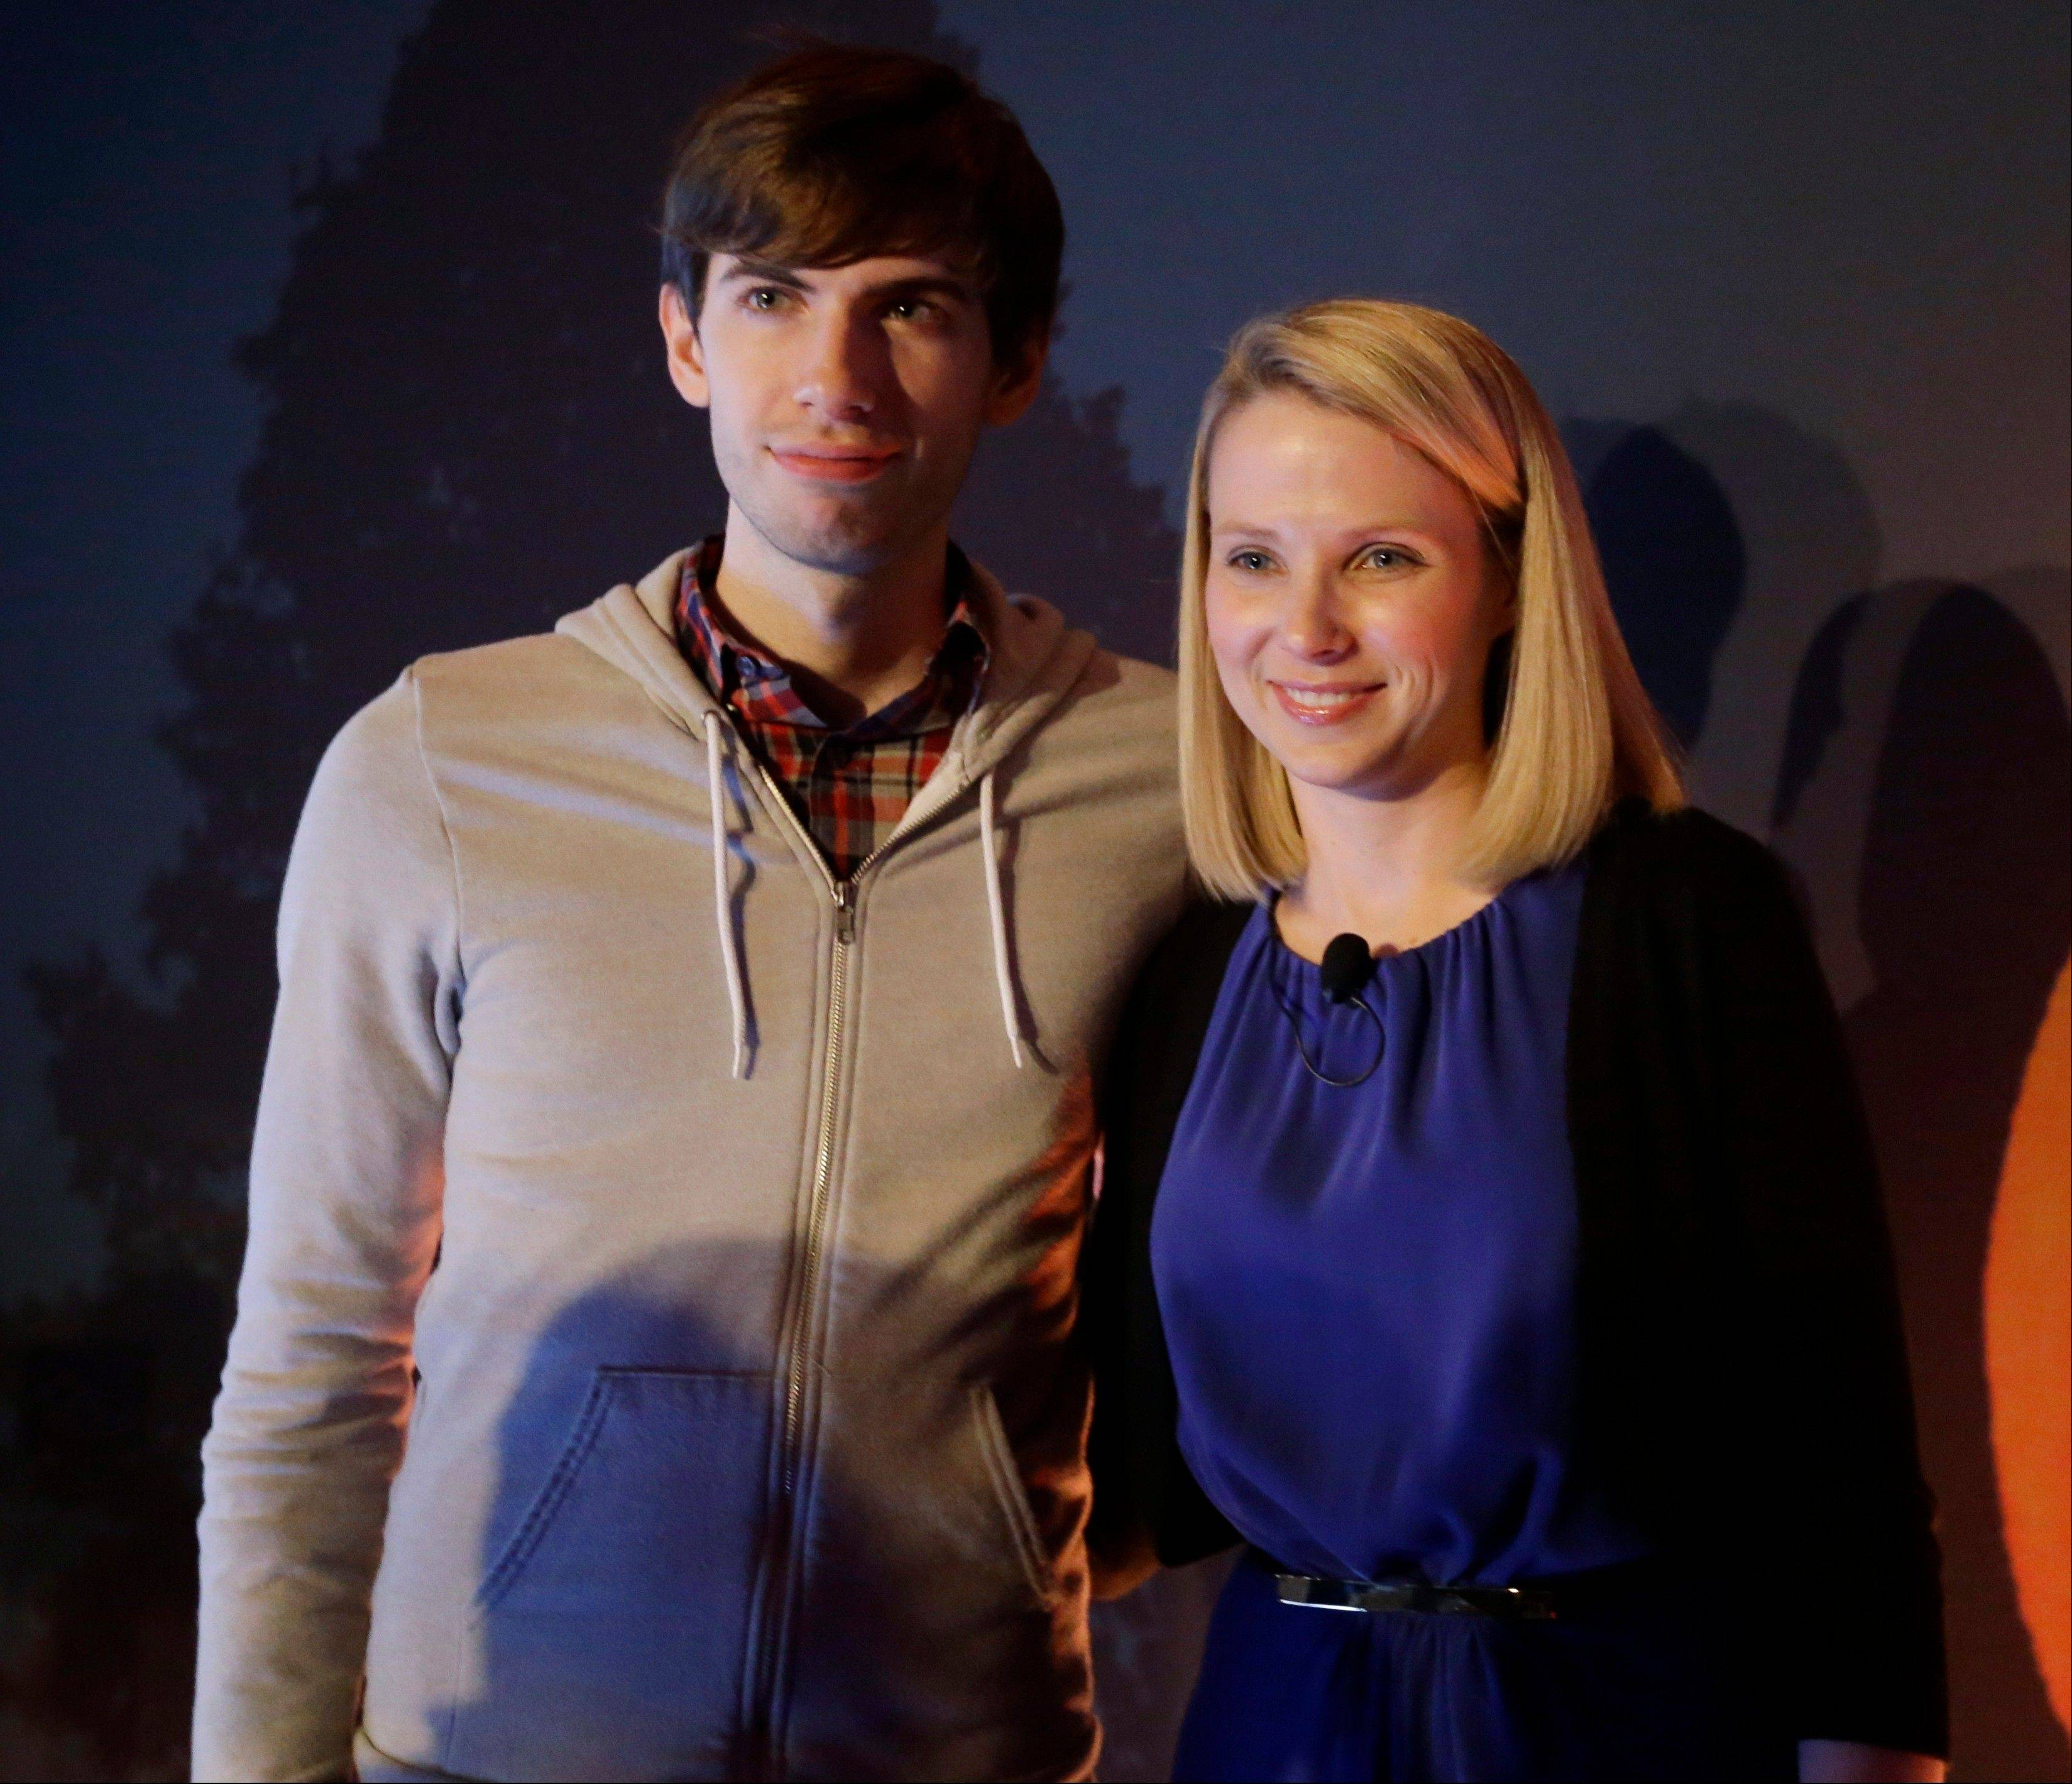 Yahoo CEO Marissa Mayer, and Tumblr Chief Executive David Karp speak during a news conference announcing that Yahoo was buying the online blogging forum Tumblr for $1.1 billion.